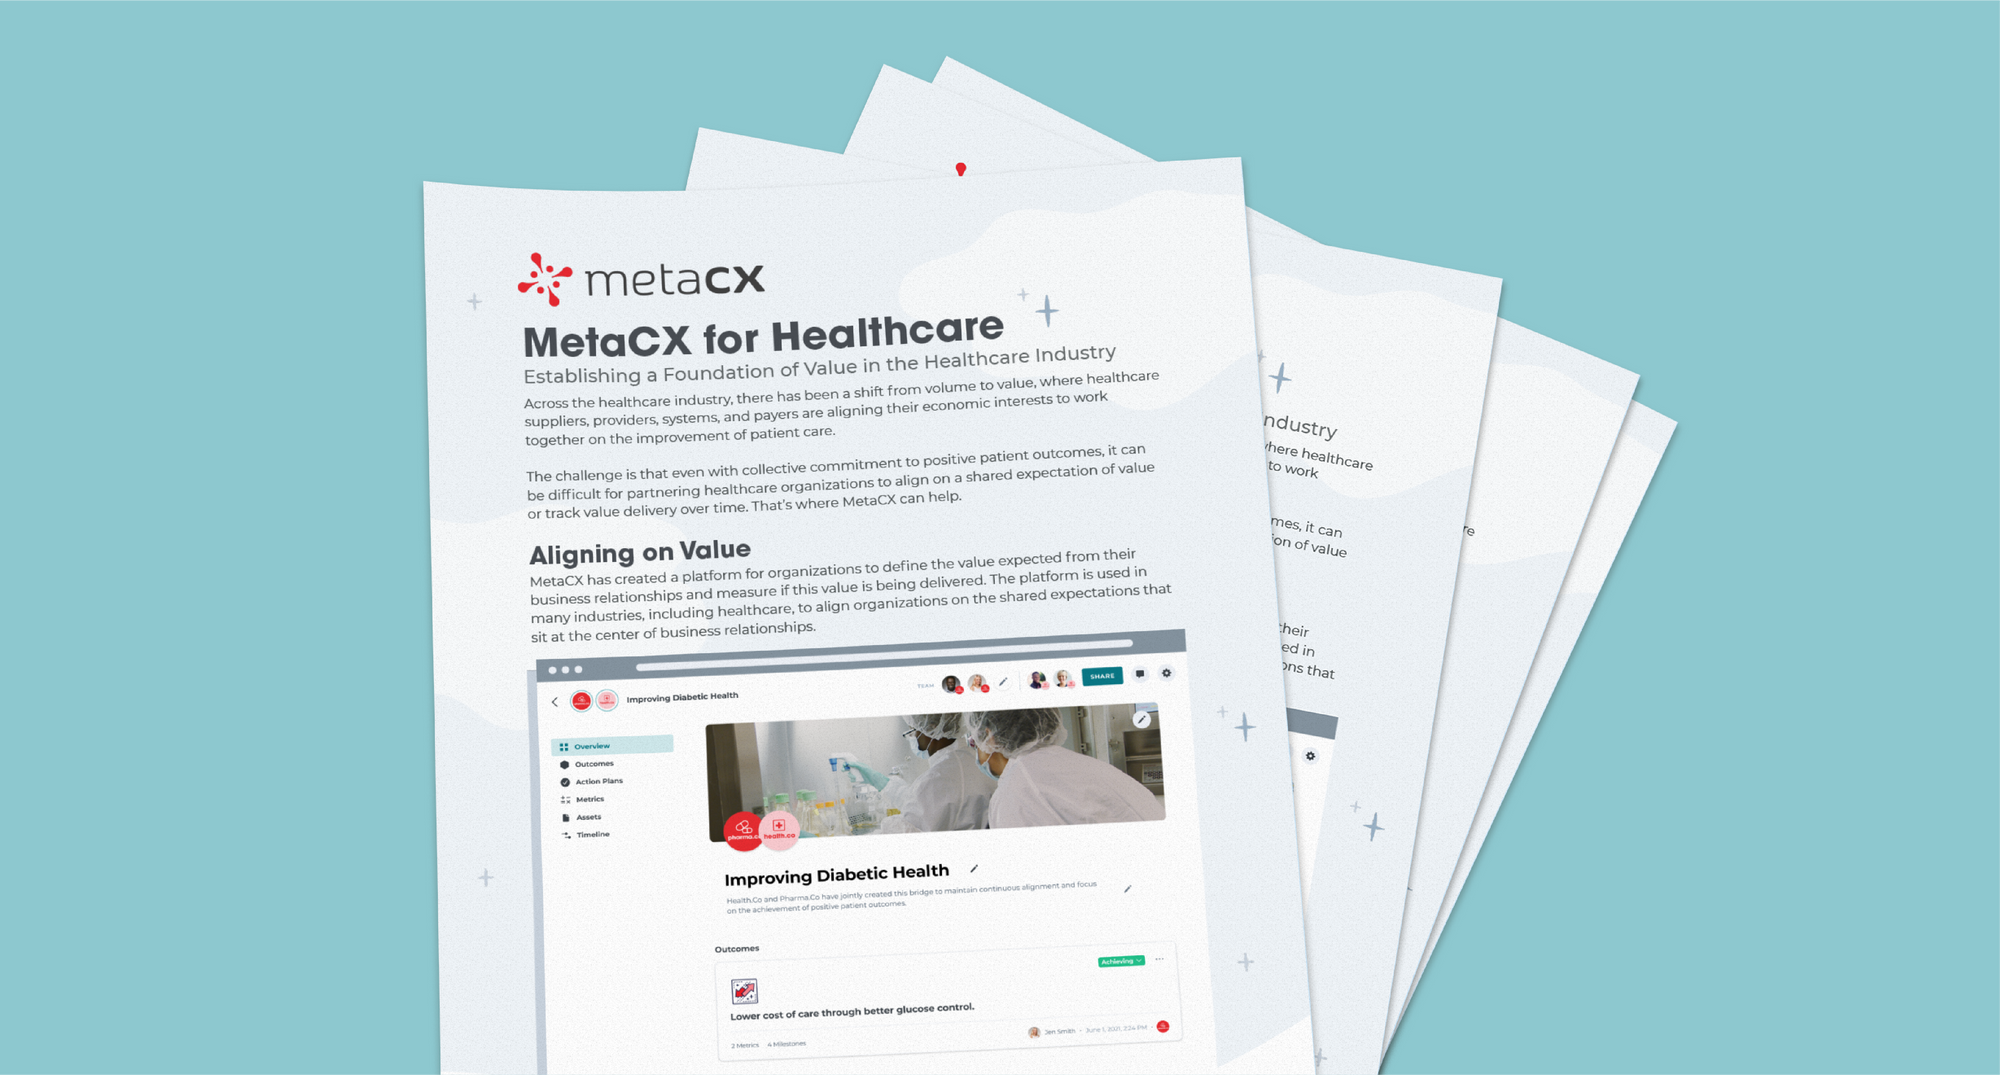 MetaCX for Healthcare